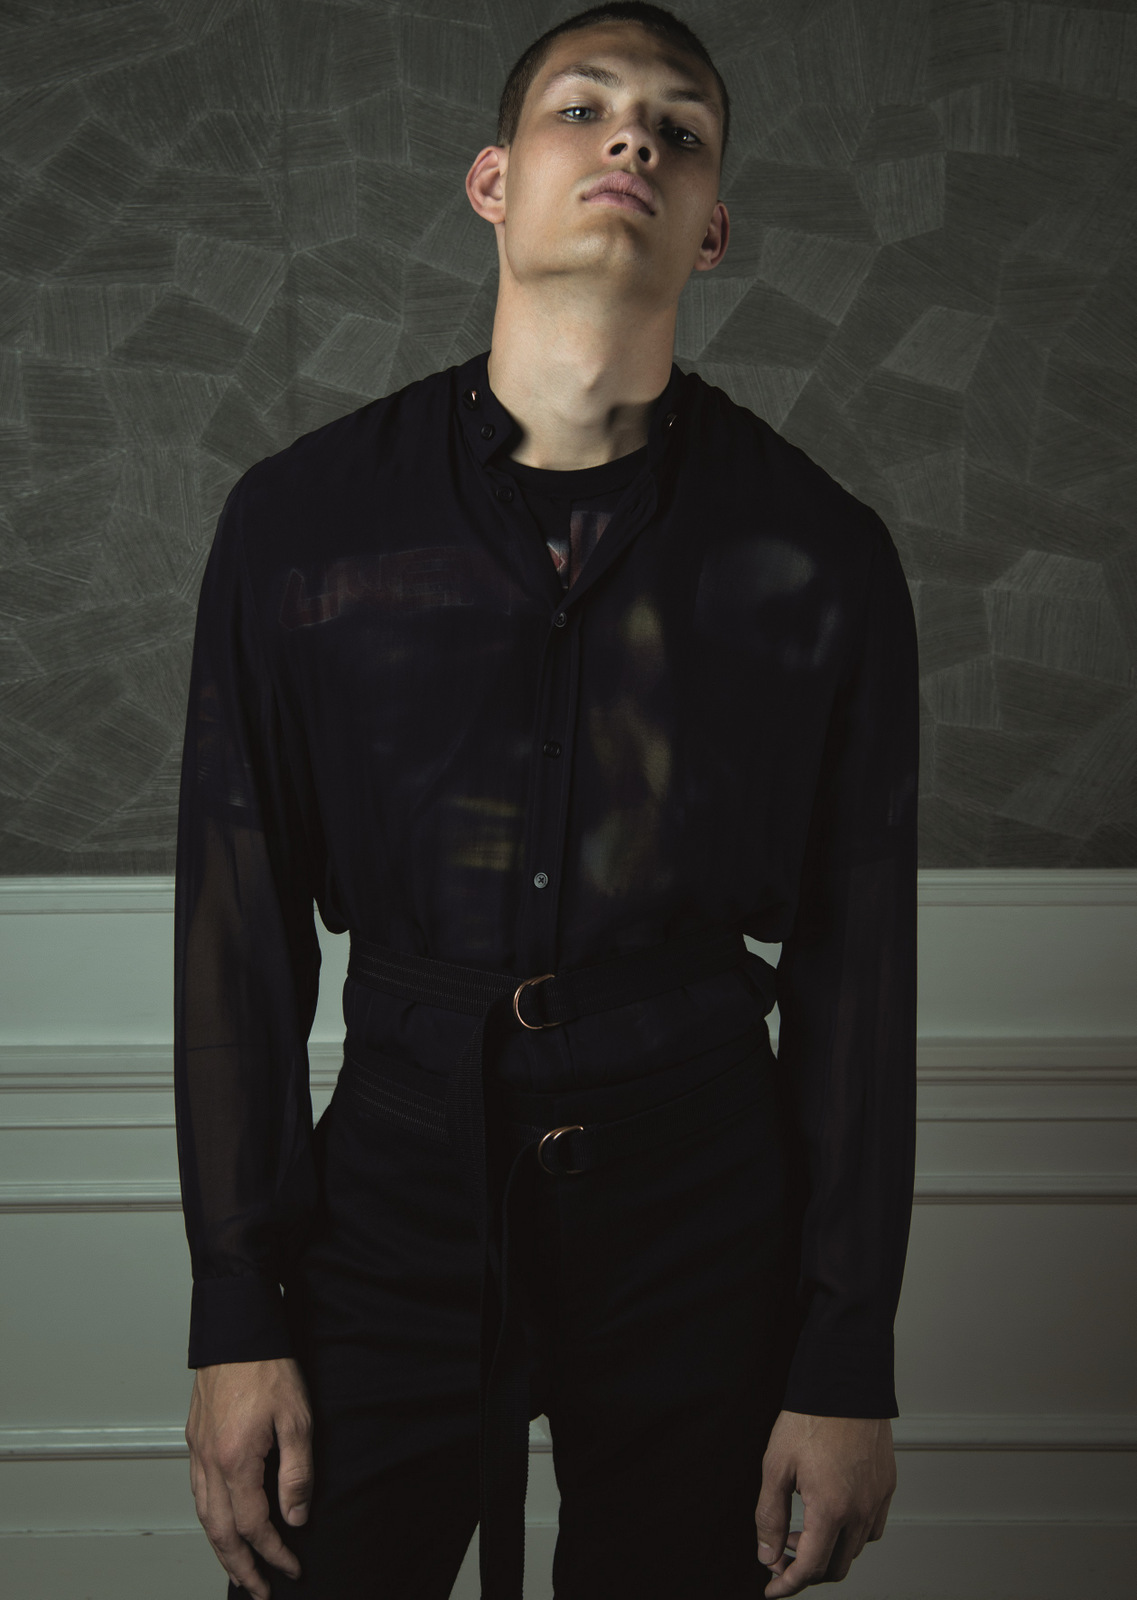 black-panther-william-los-by-ferry-van-der-nat-vt-fw16-17